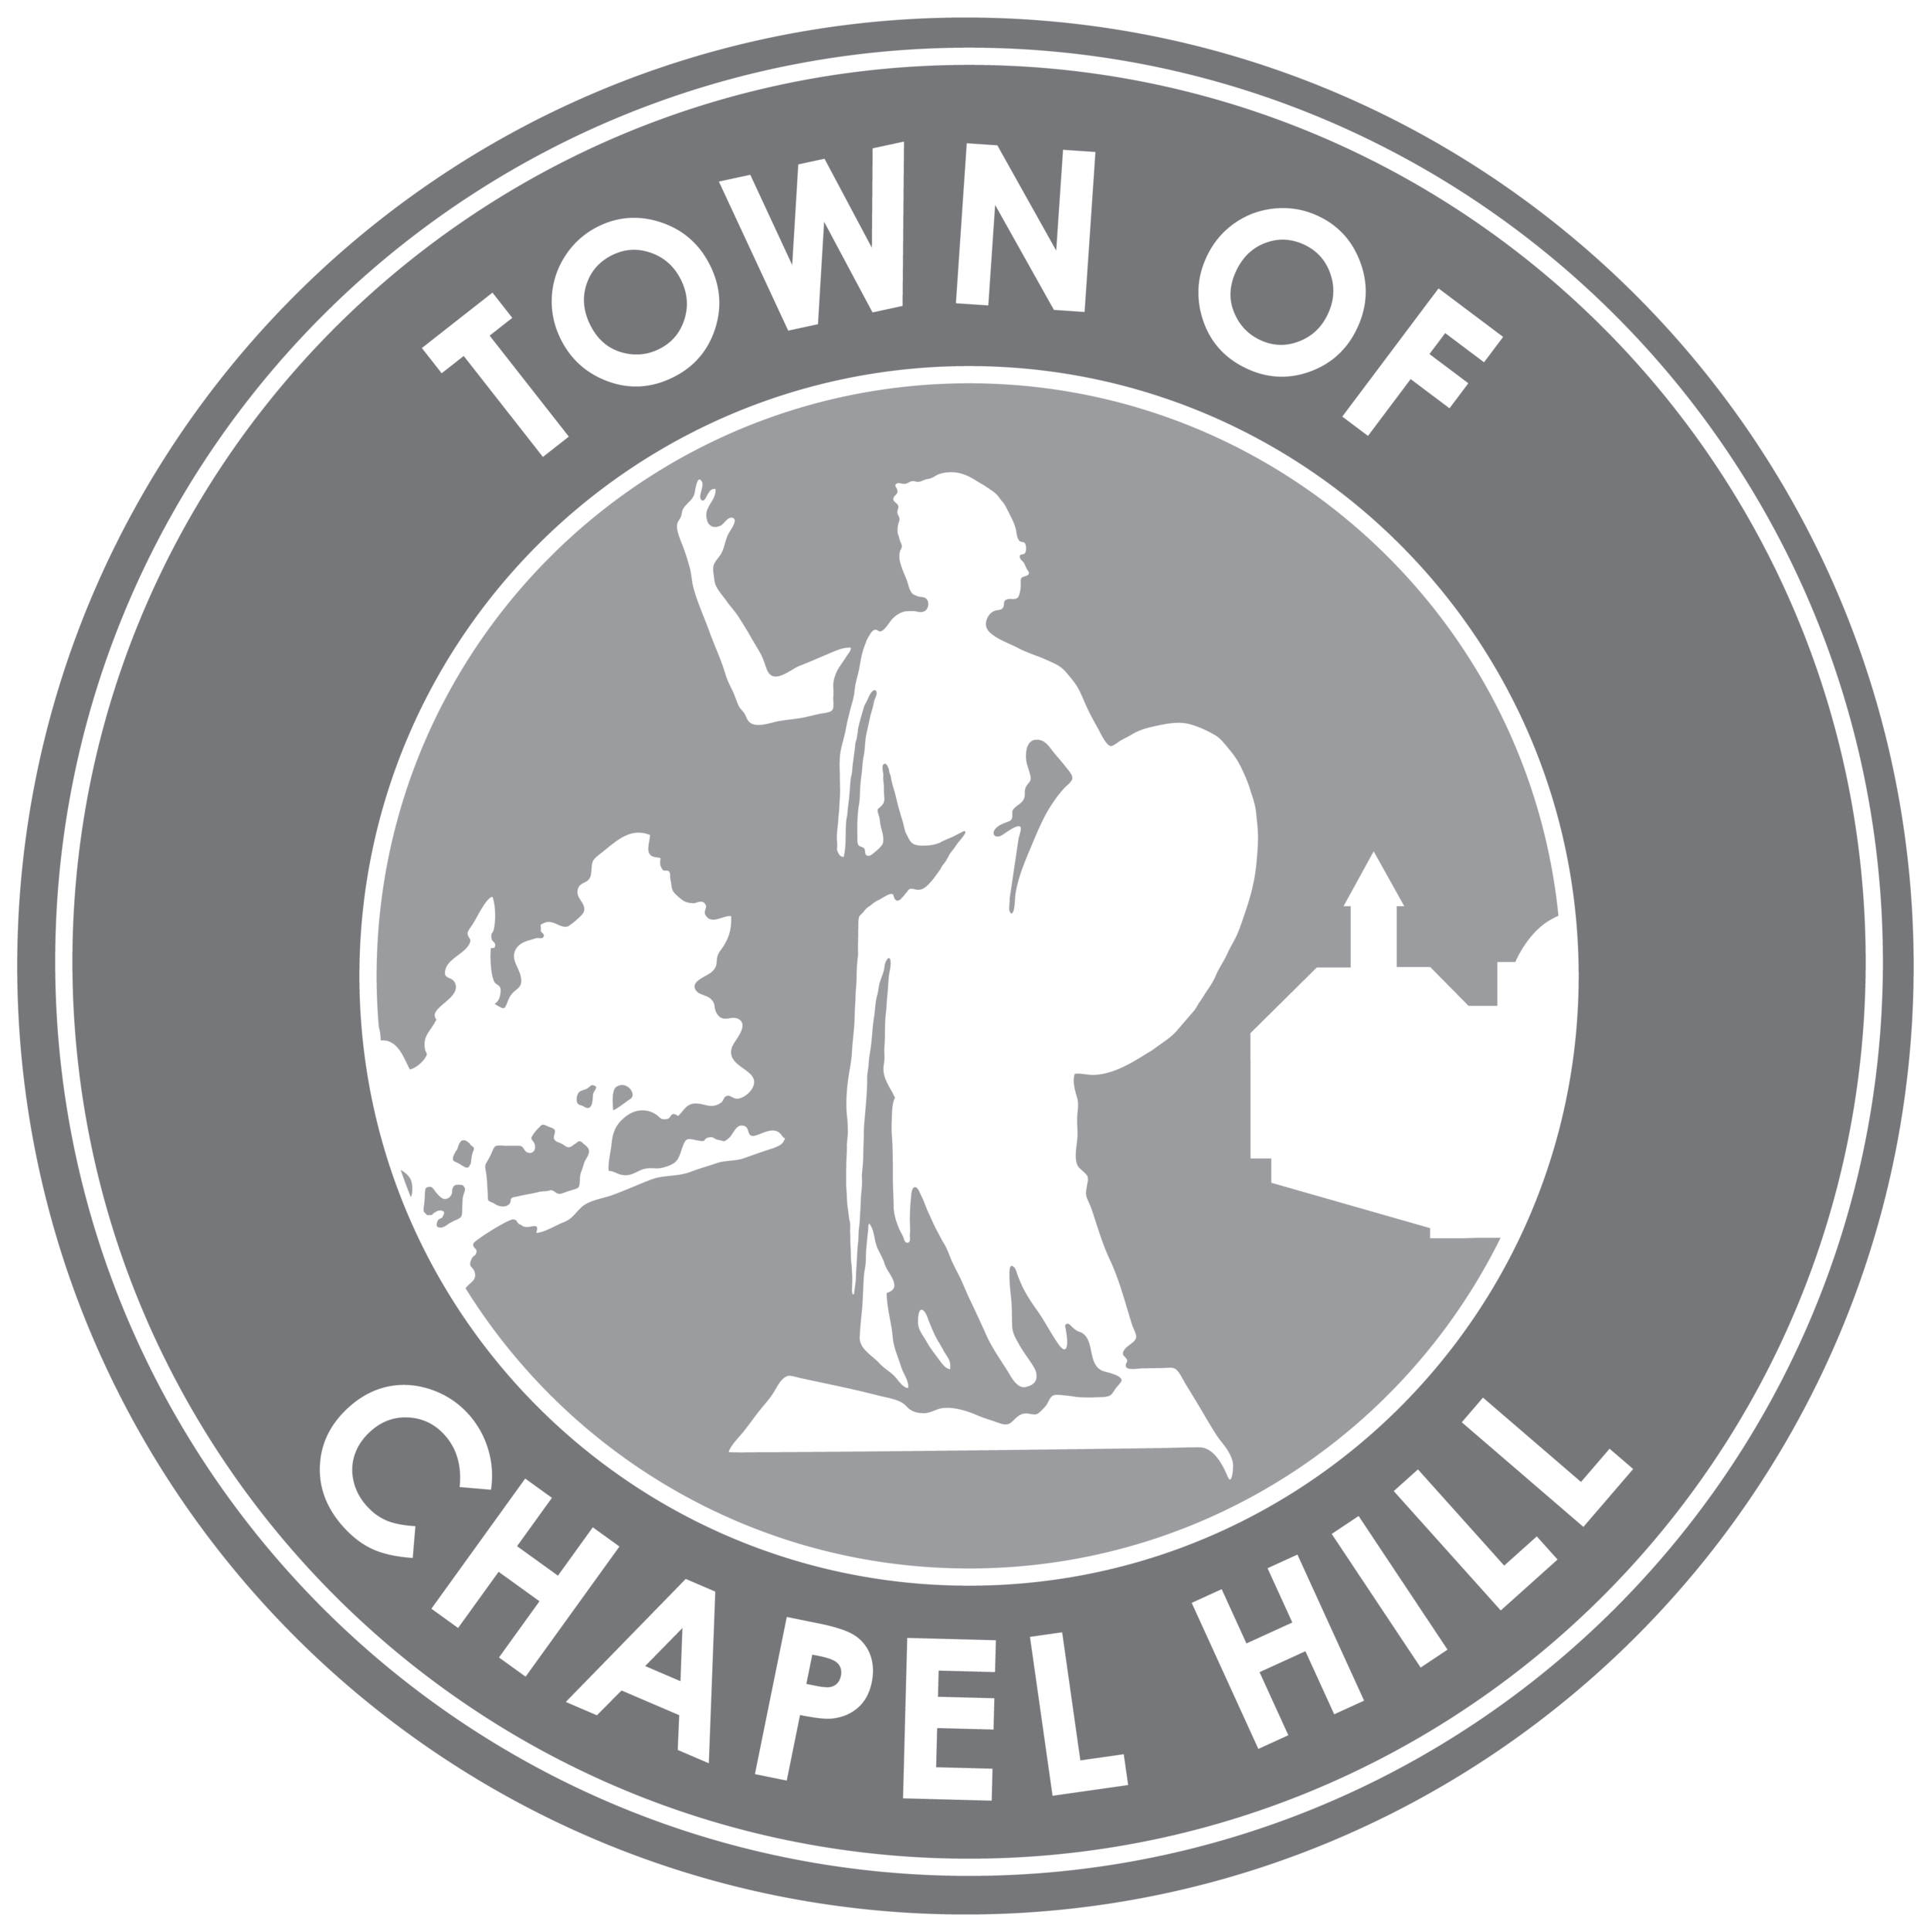 Town_SEAL_Grayscale.png